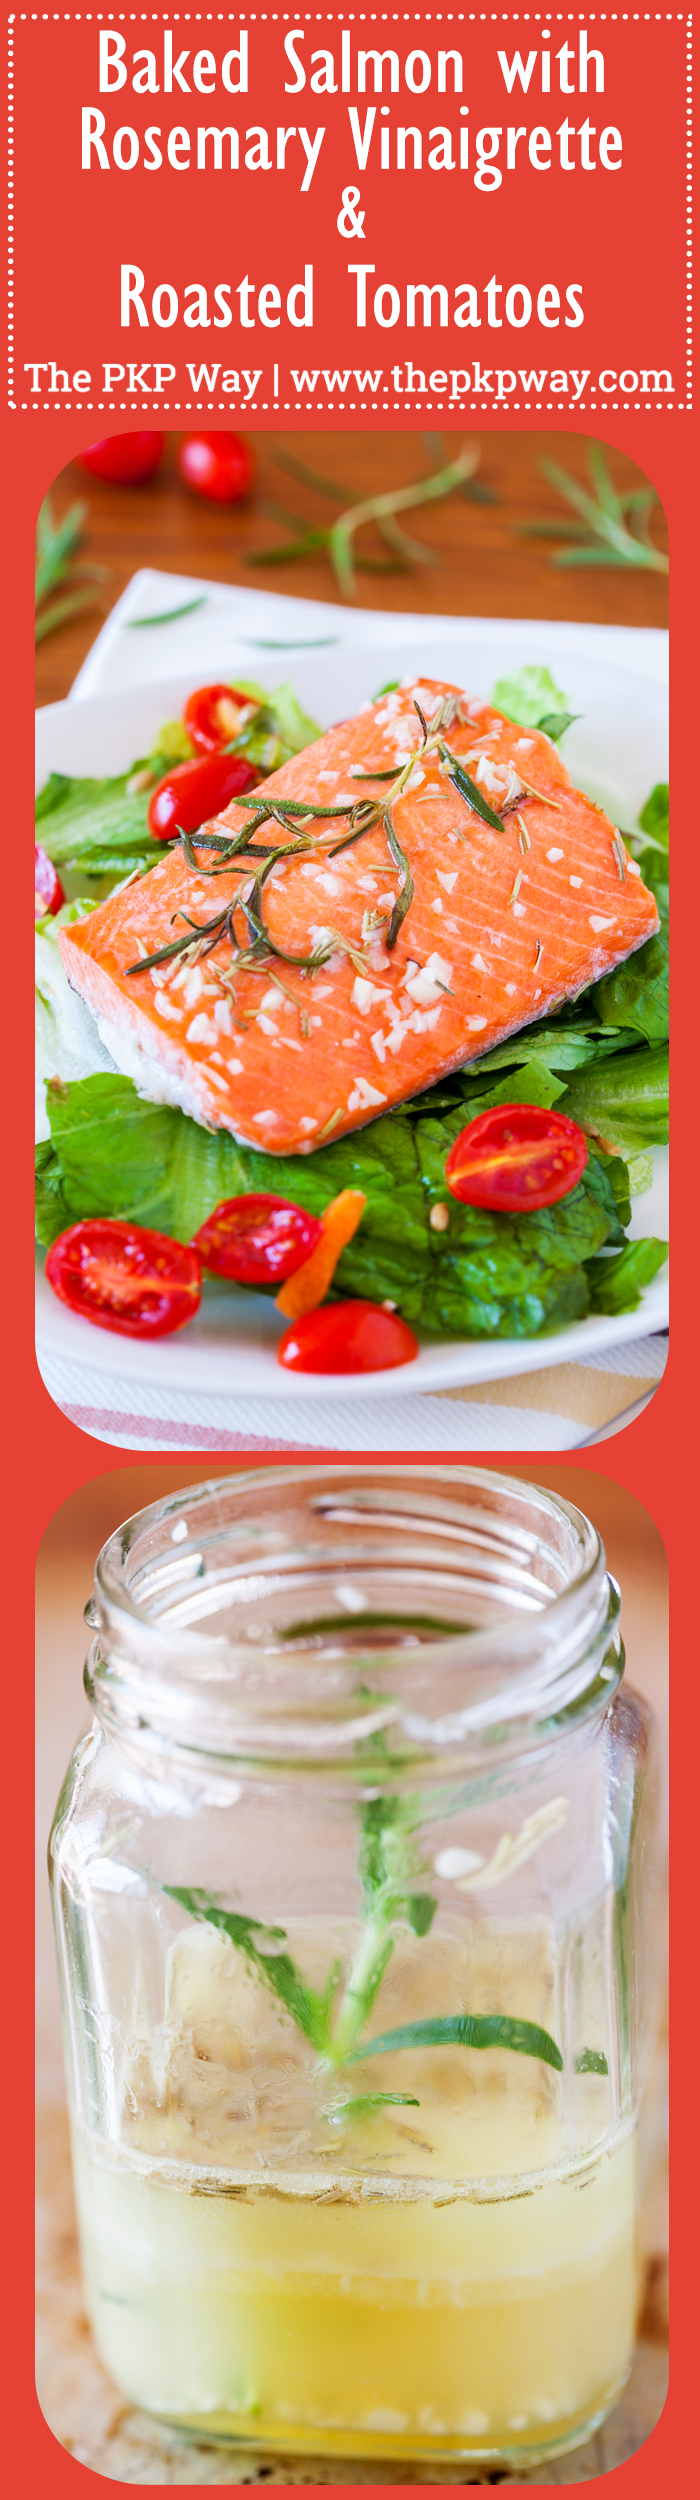 Baked Salmon with Rosemary Vinaigrette and Roasted Tomatoes | The PKP ...